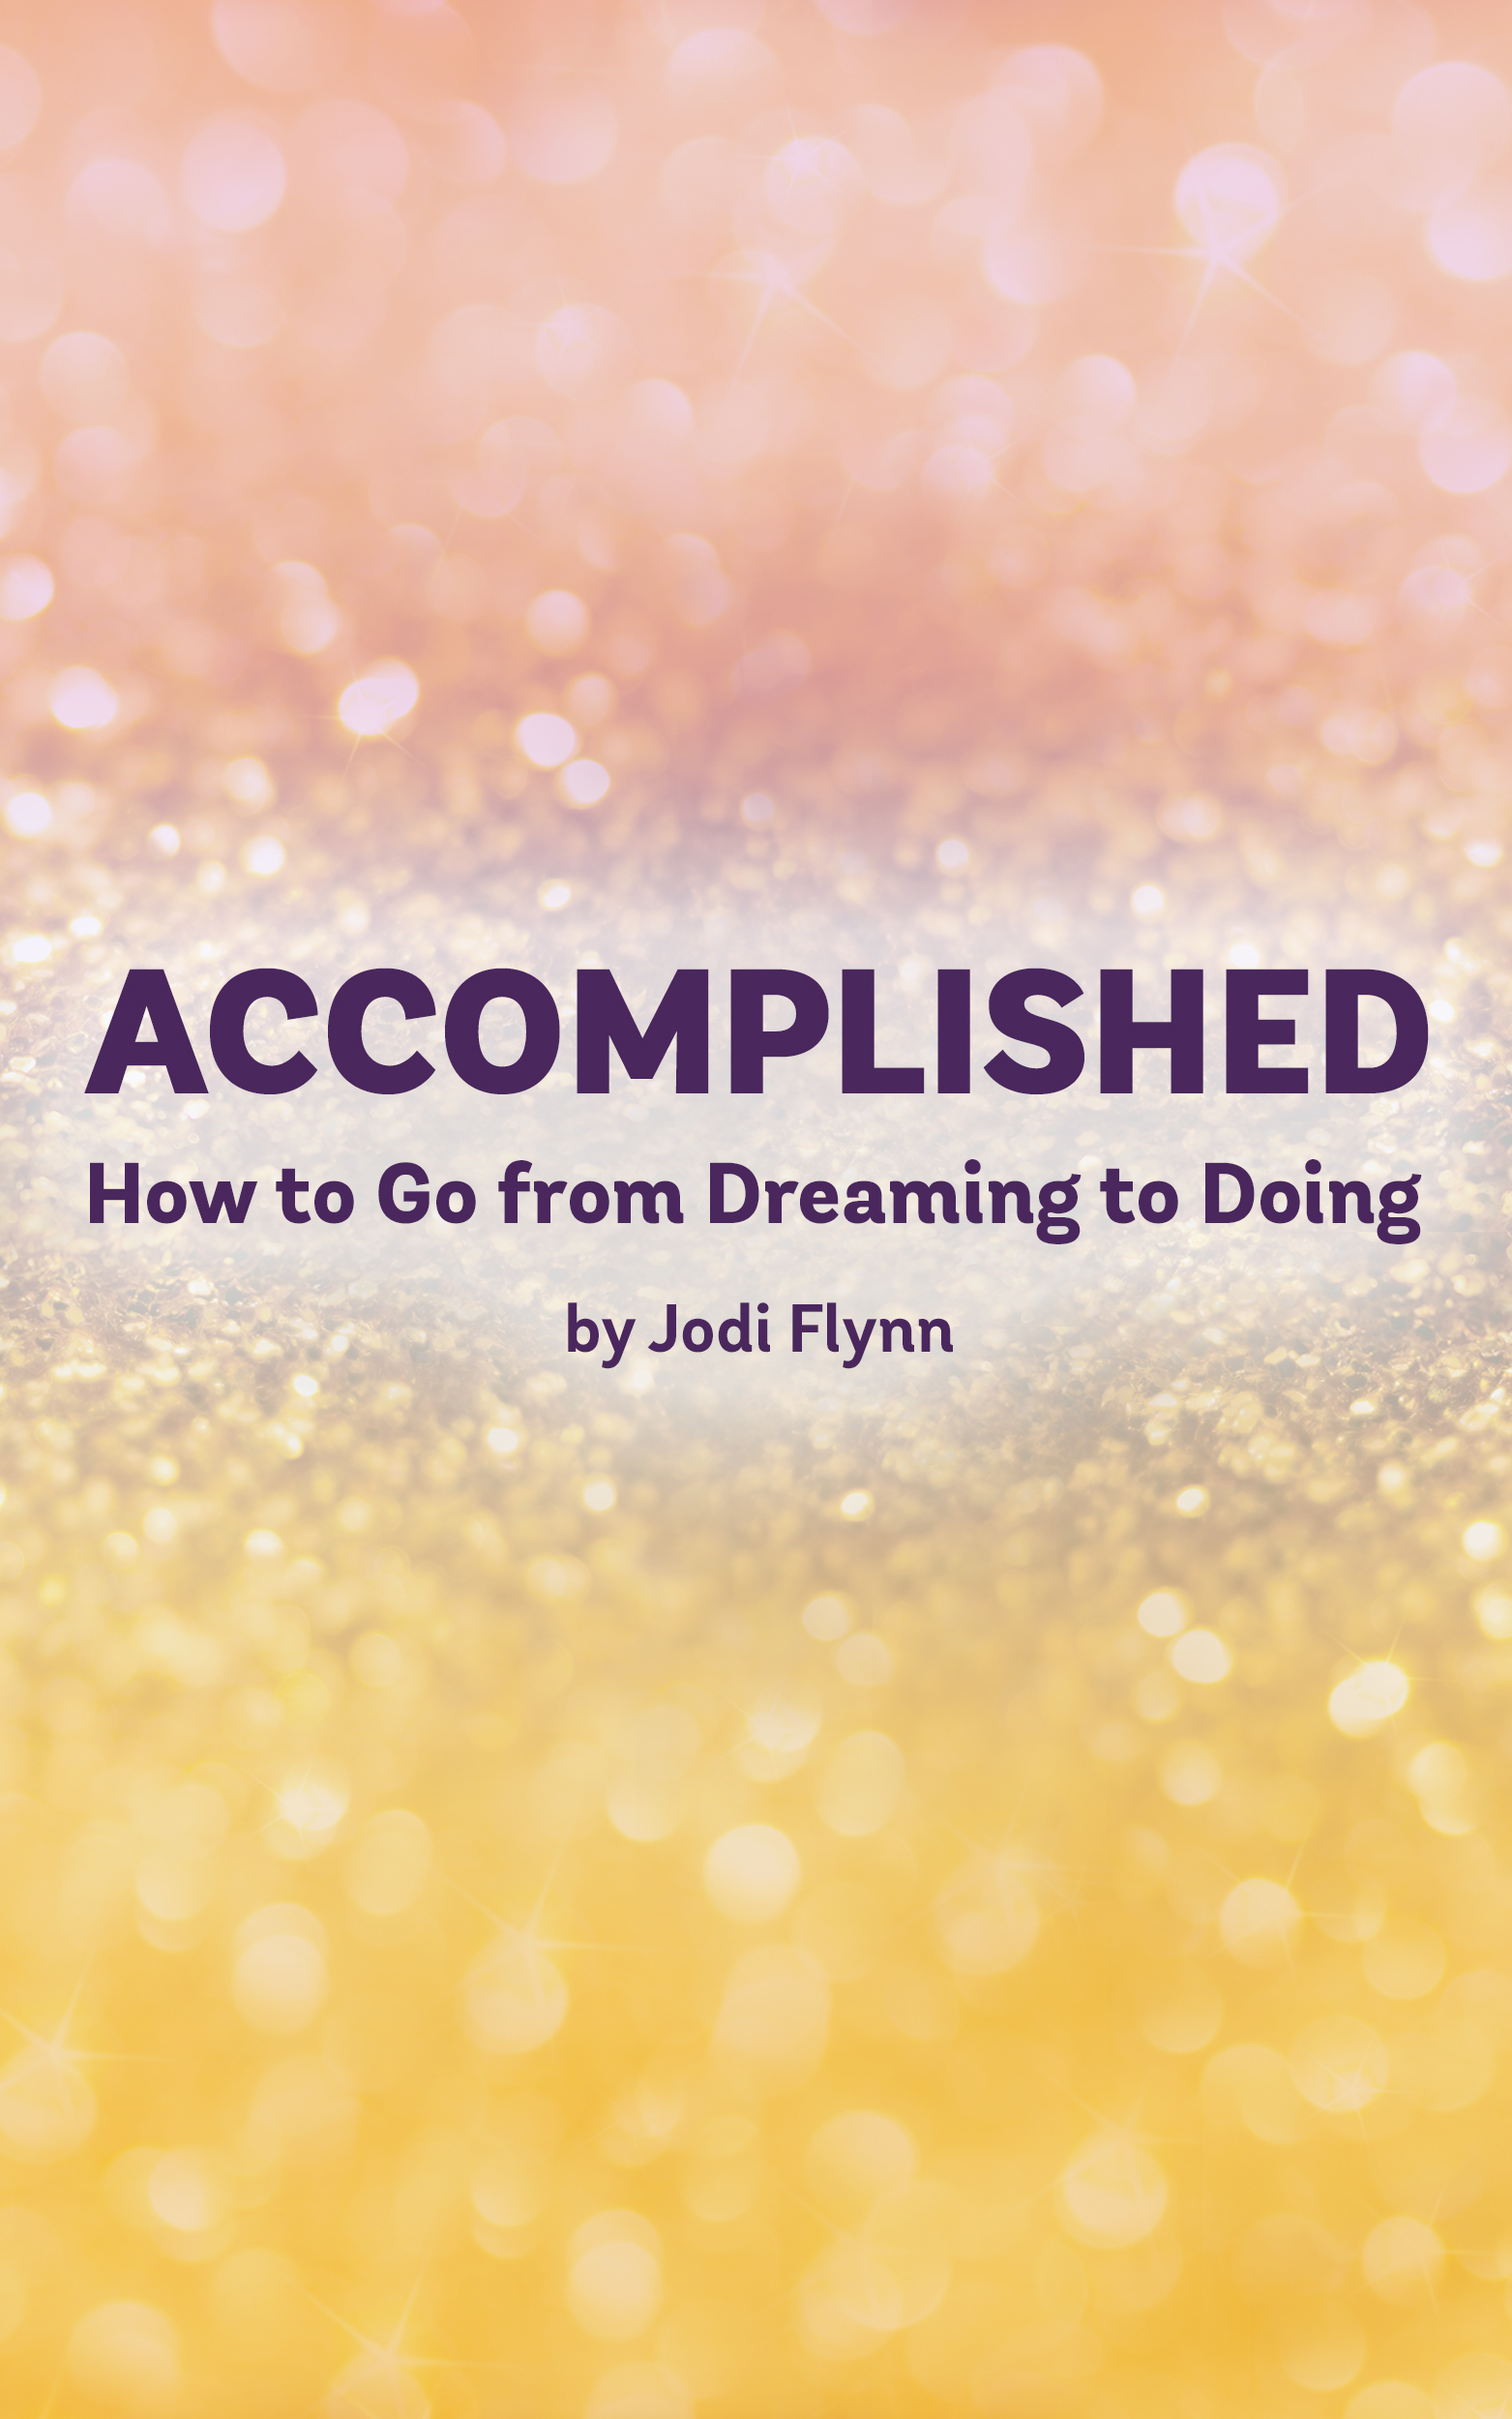 How to go from dreaming to doing